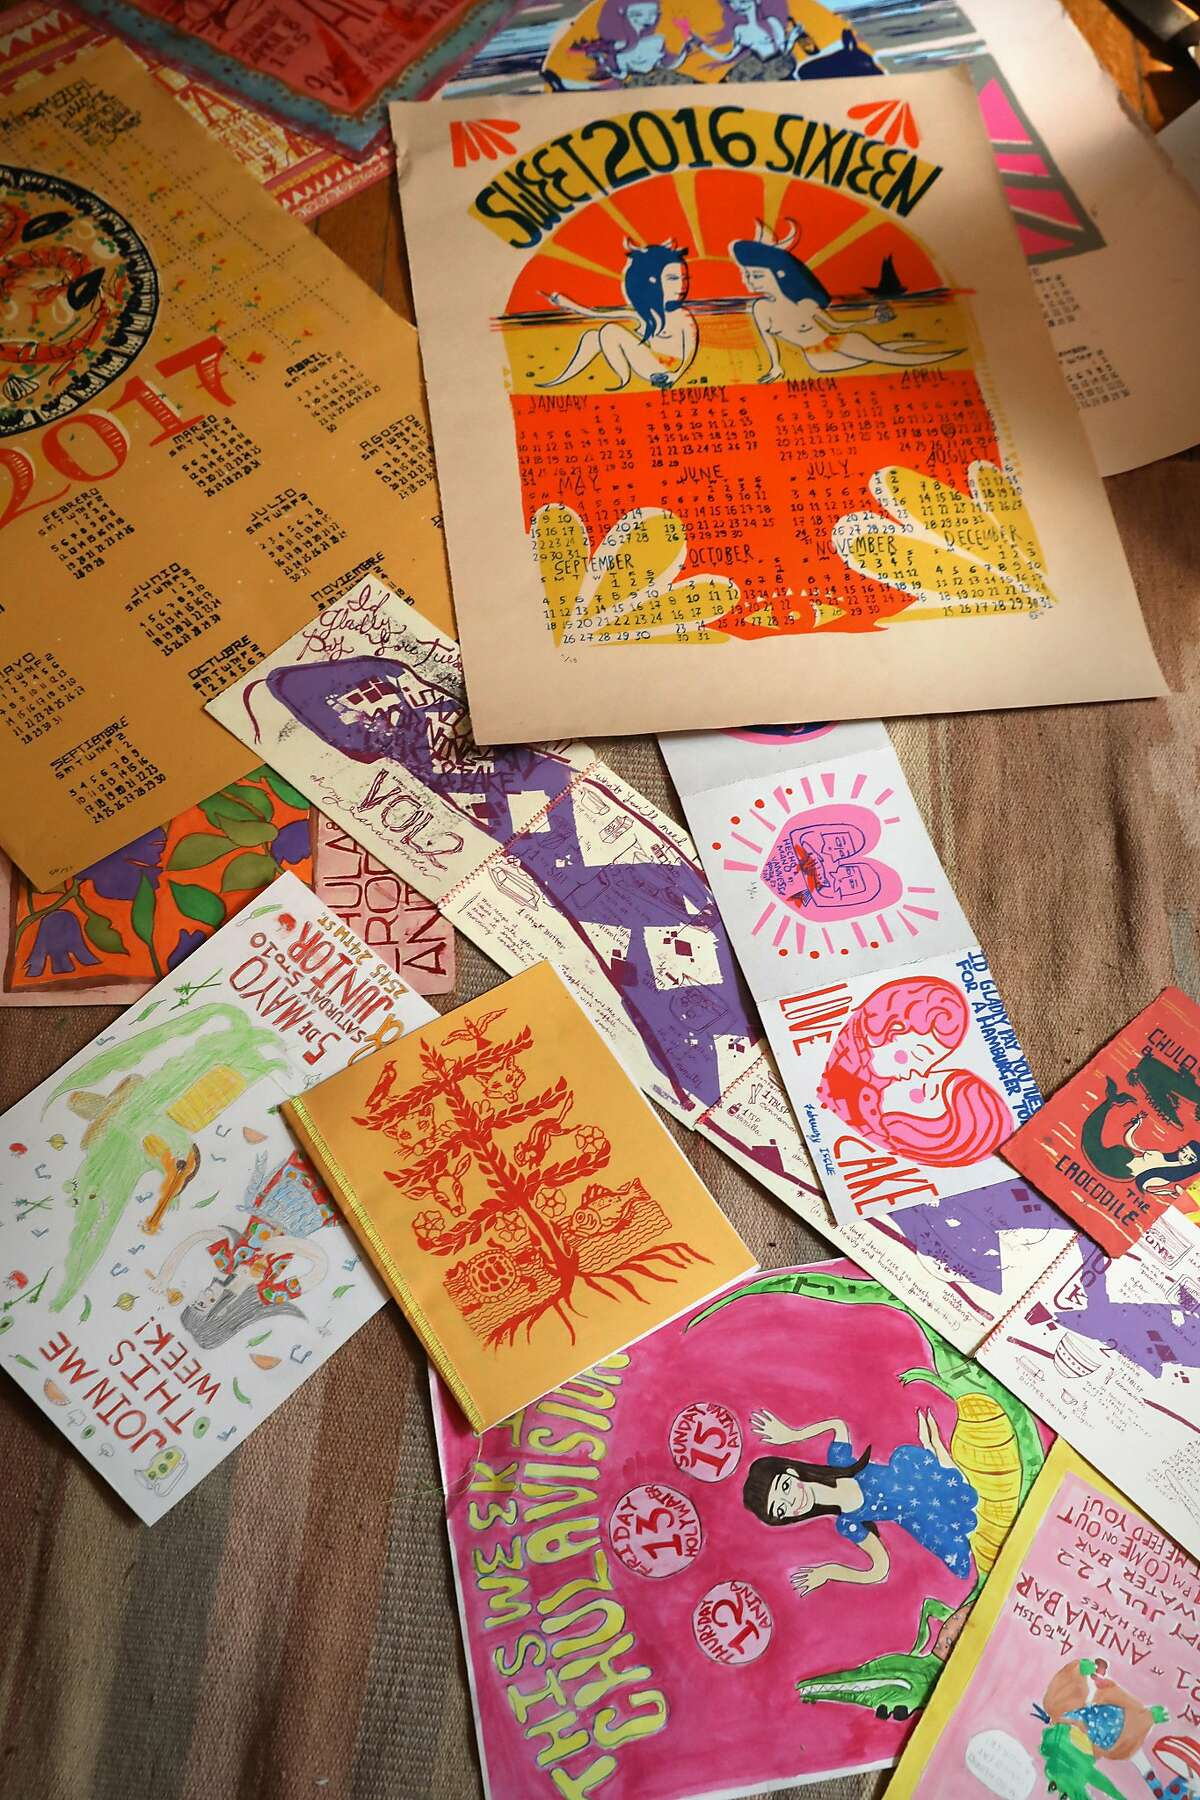 Vannessa Gonzalez's artwork. The self-taught cook attended Academy of Art University for printmaking in S.F.